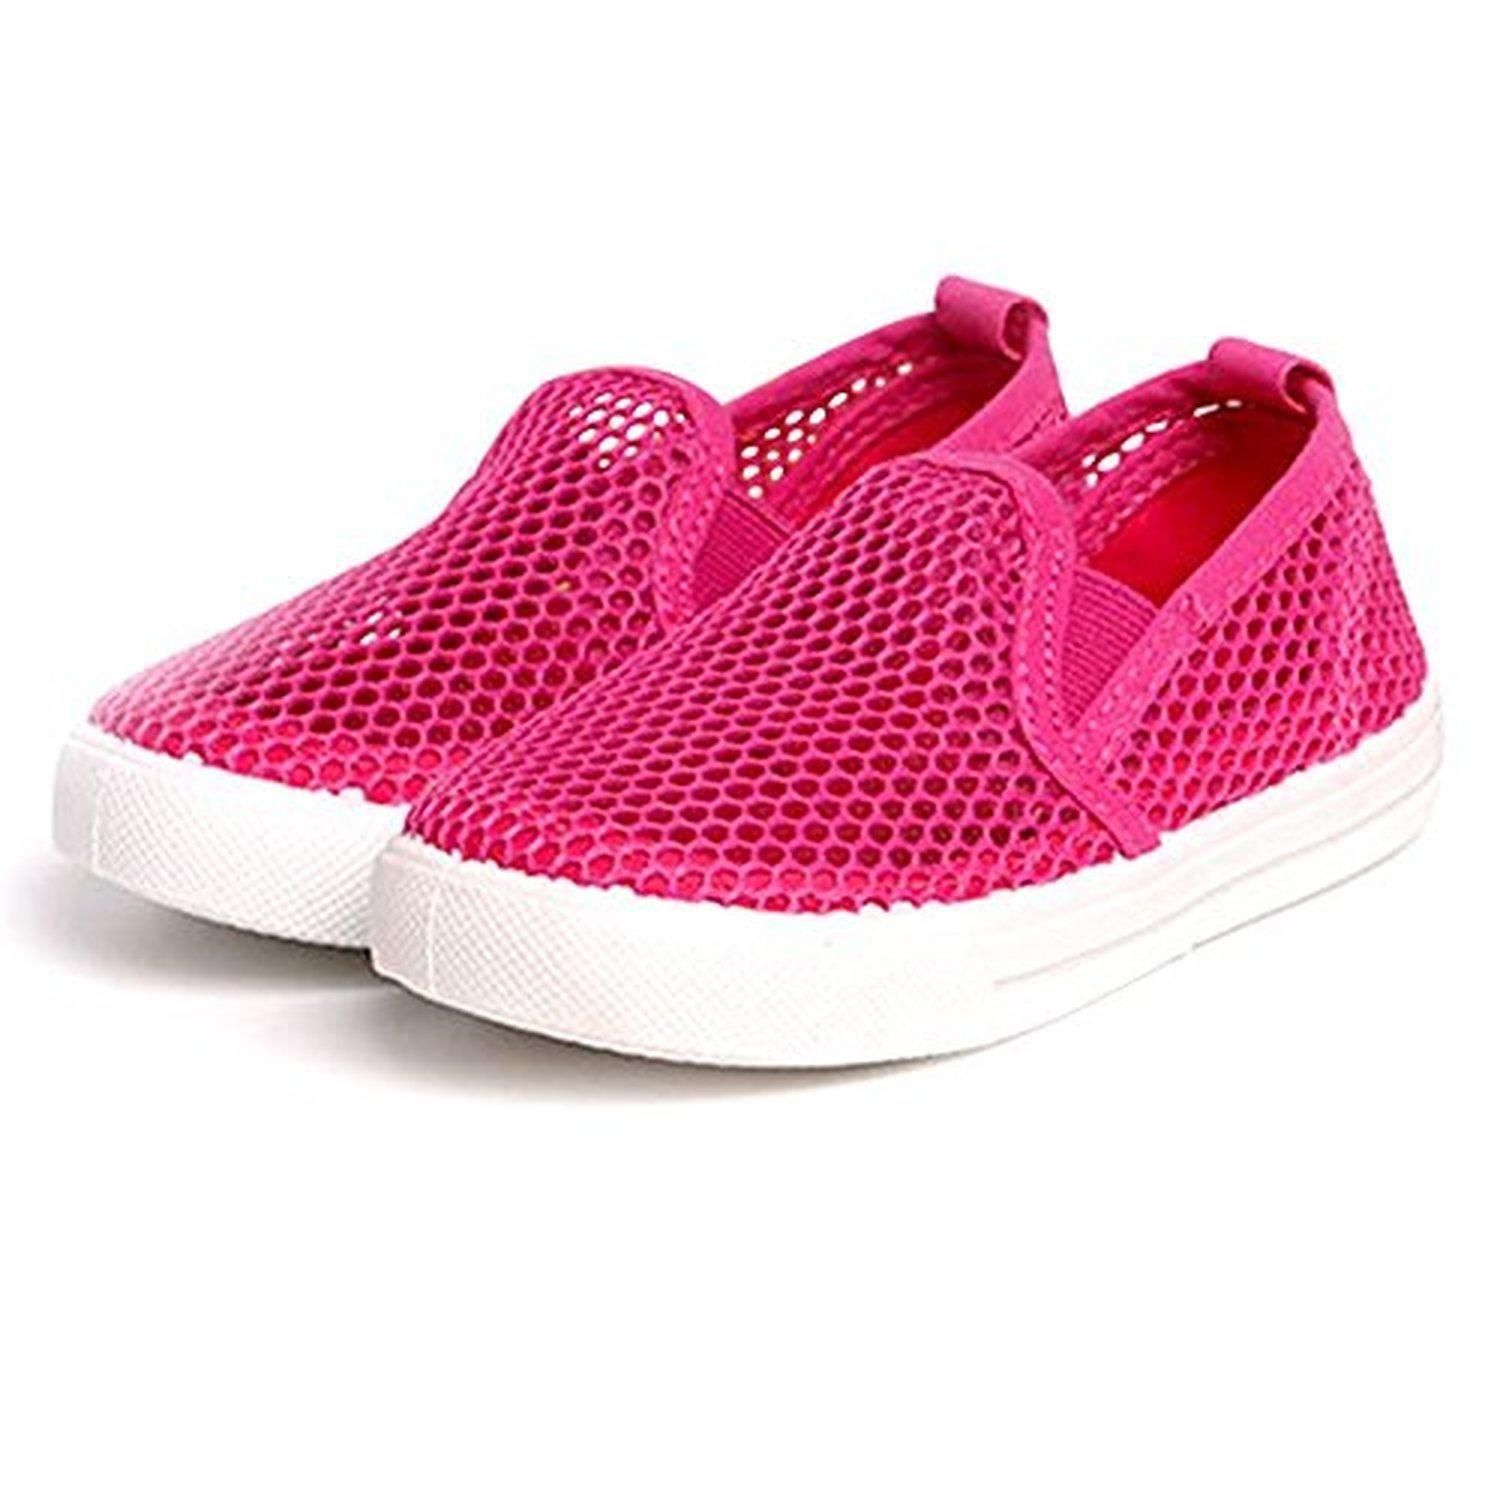 LIVEBOX Breathable Mesh Soft Rubber Sole Summer Seaker Toddler Beach